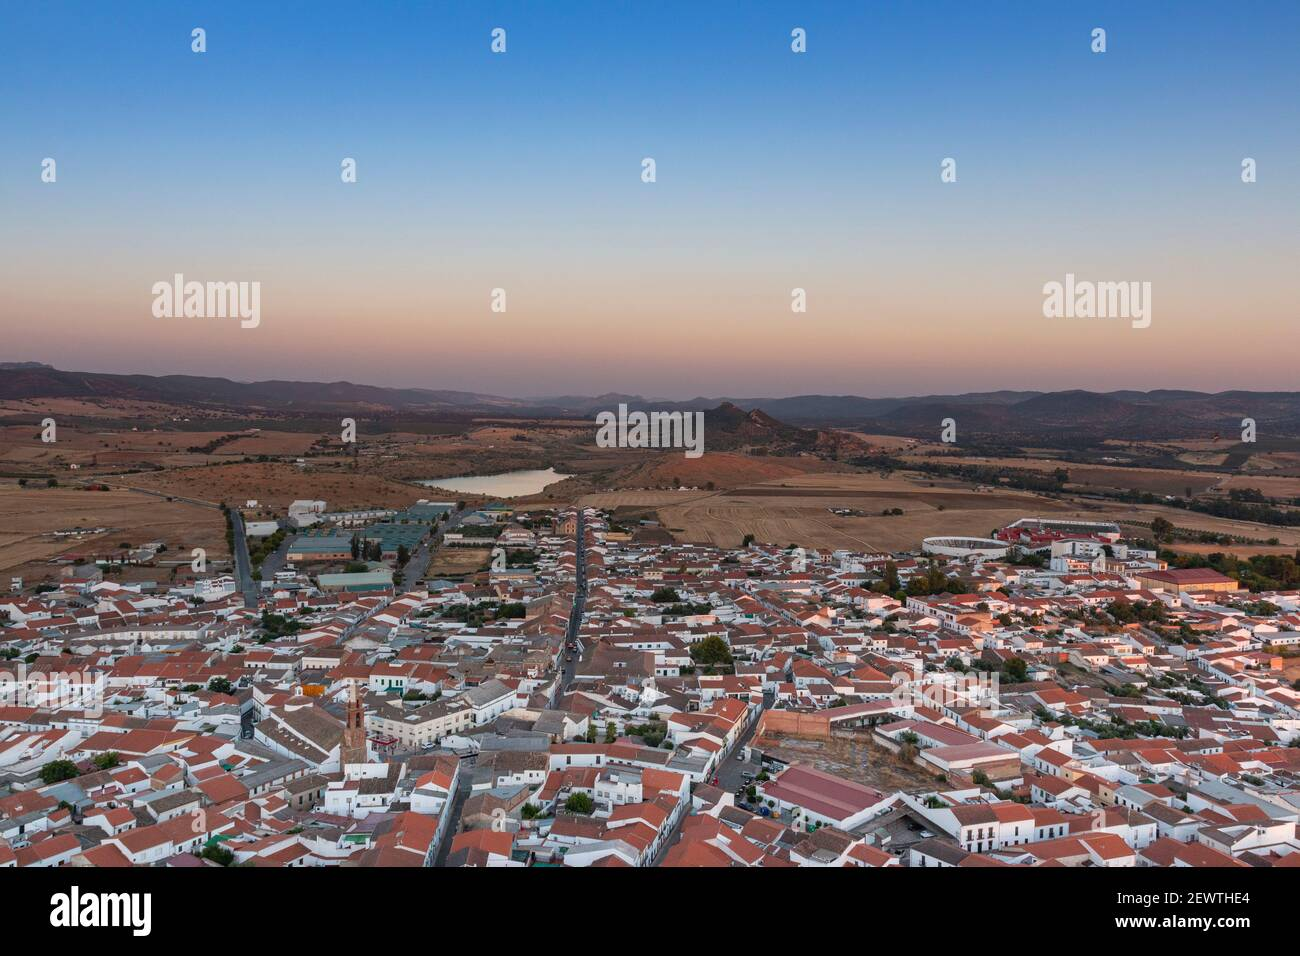 Small Andalusian town in southern Spain photographed from the top of a mountain Stock Photo